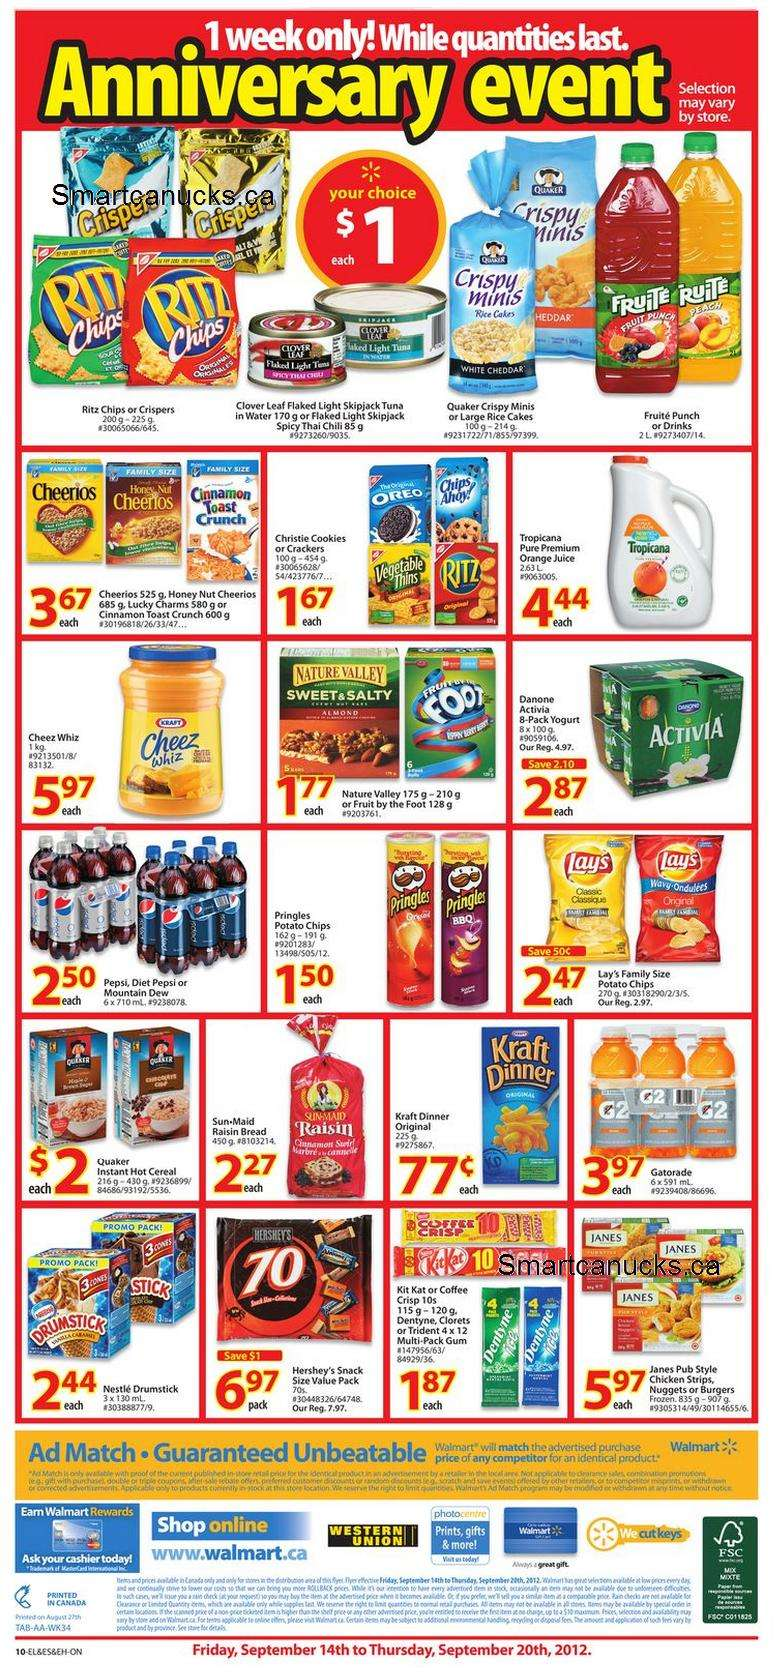 Flyer walmart anniversary sale sep to canada